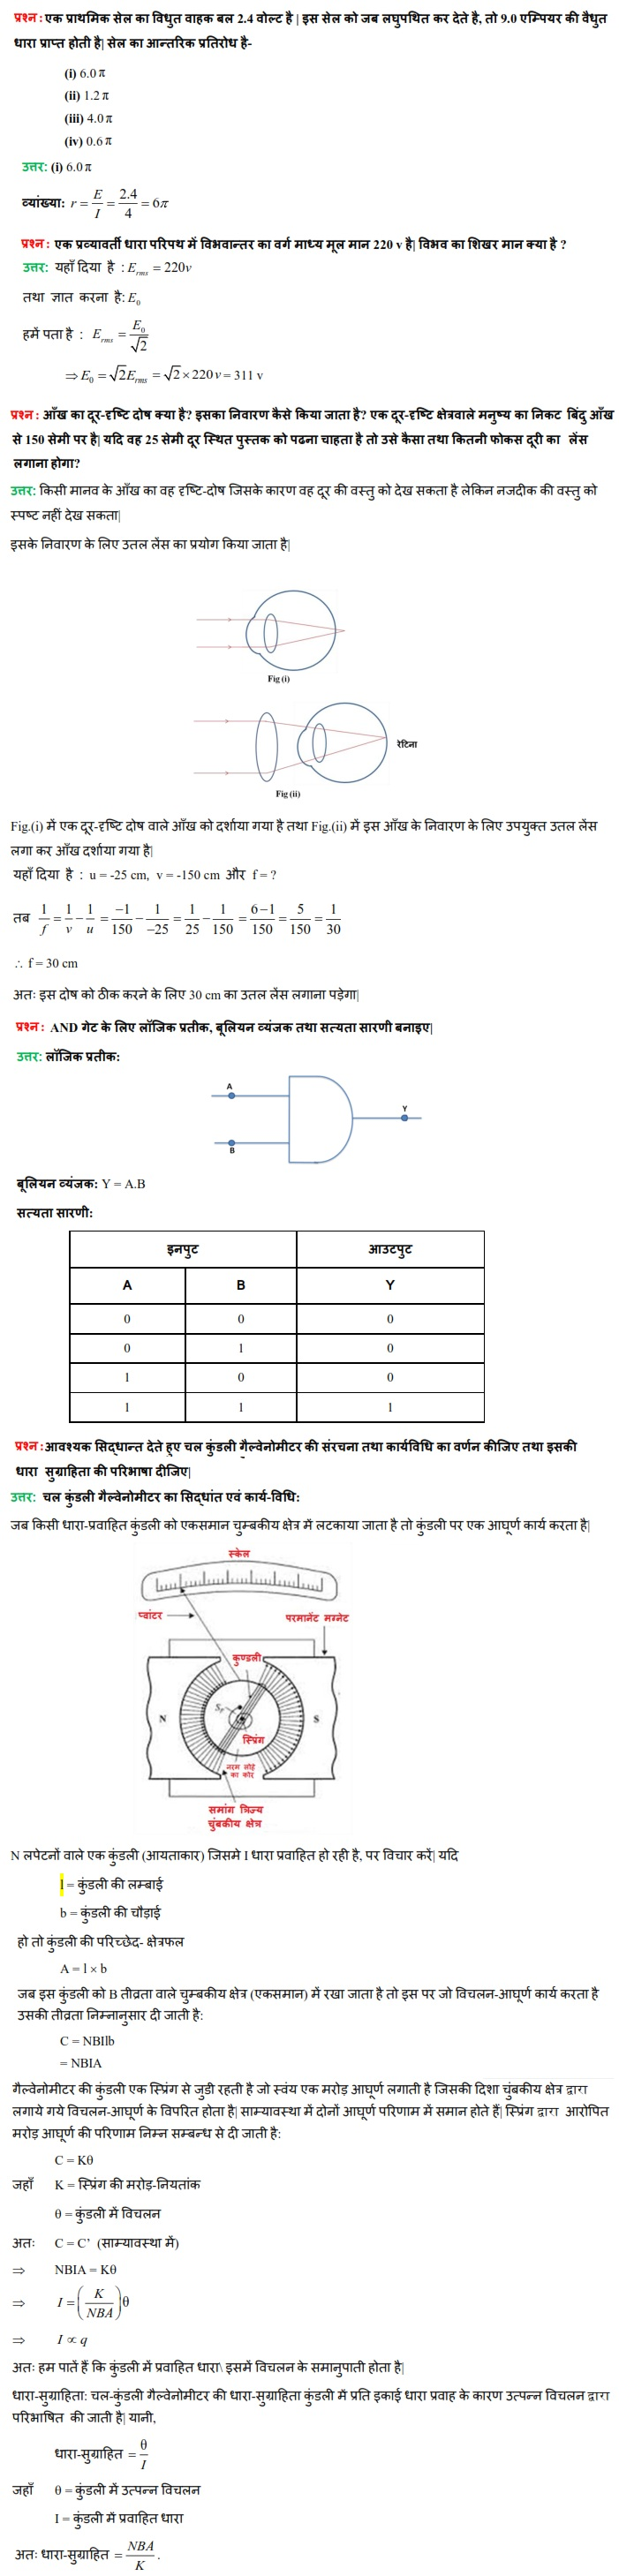 Up board class 12th physics ii solved question paper 2014 up board class 12th physics second solved question paper set 1 2014 malvernweather Gallery